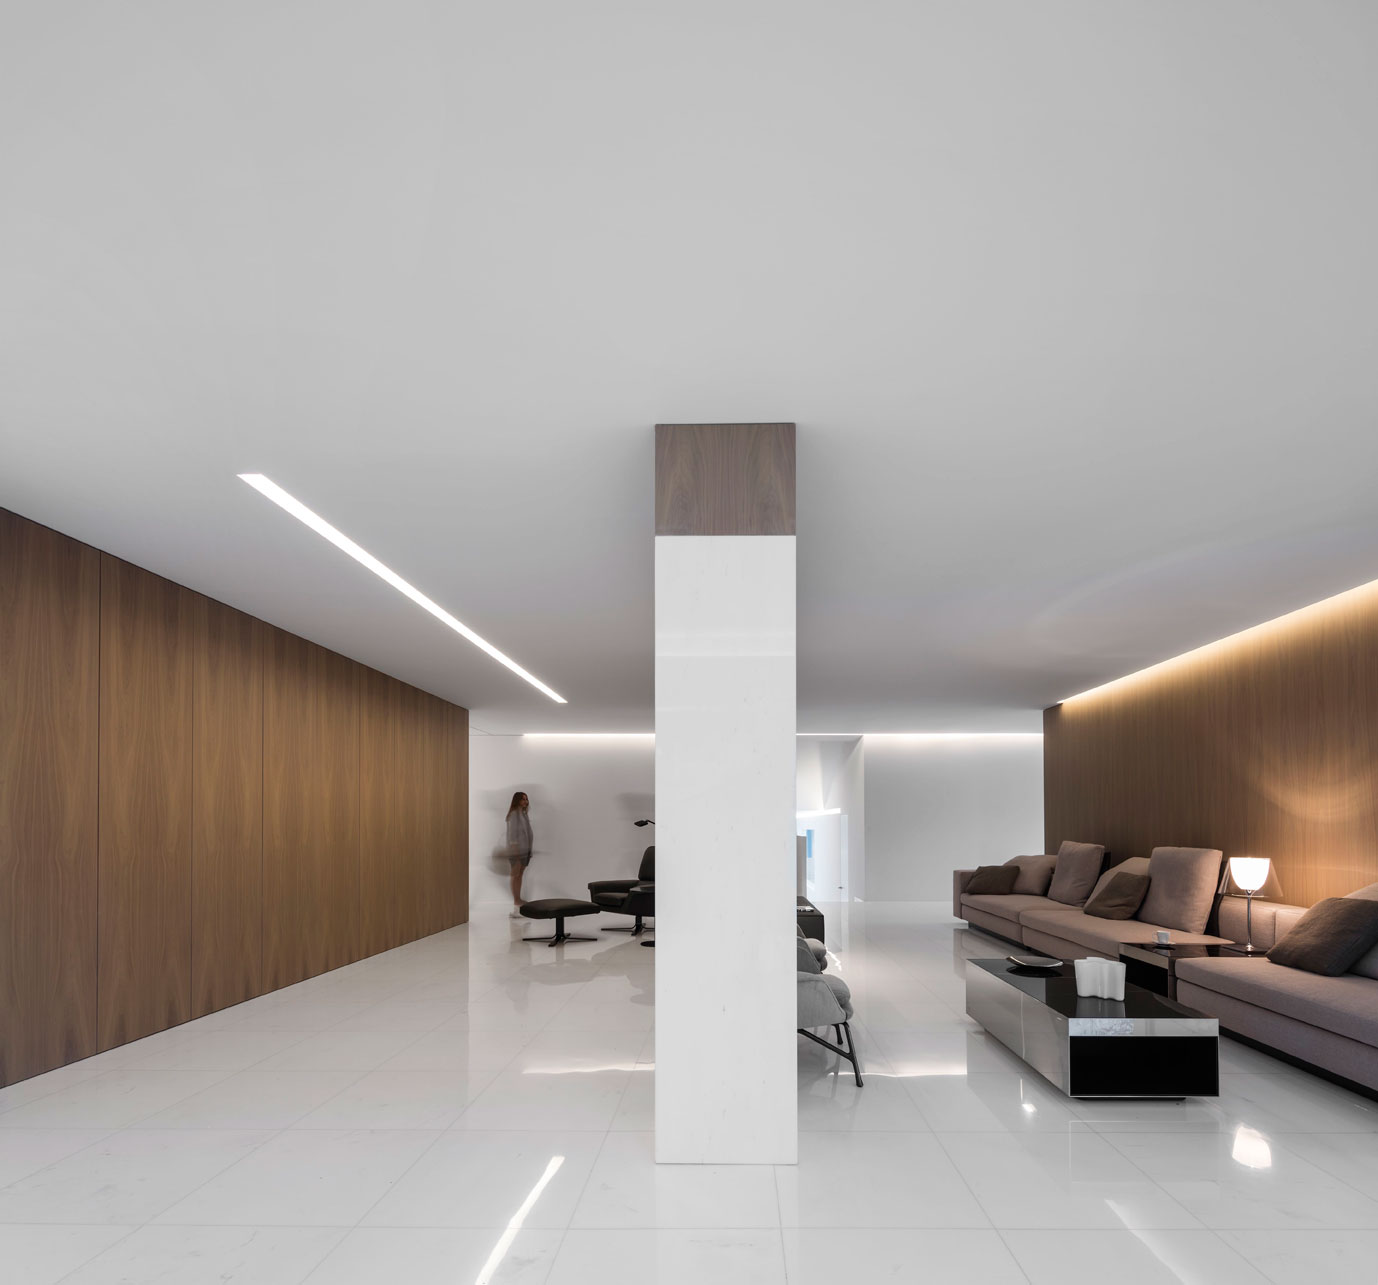 dissenycv-es-fran-silvestre-arquitectos_-house-betwwen-the-pine-forest_-21